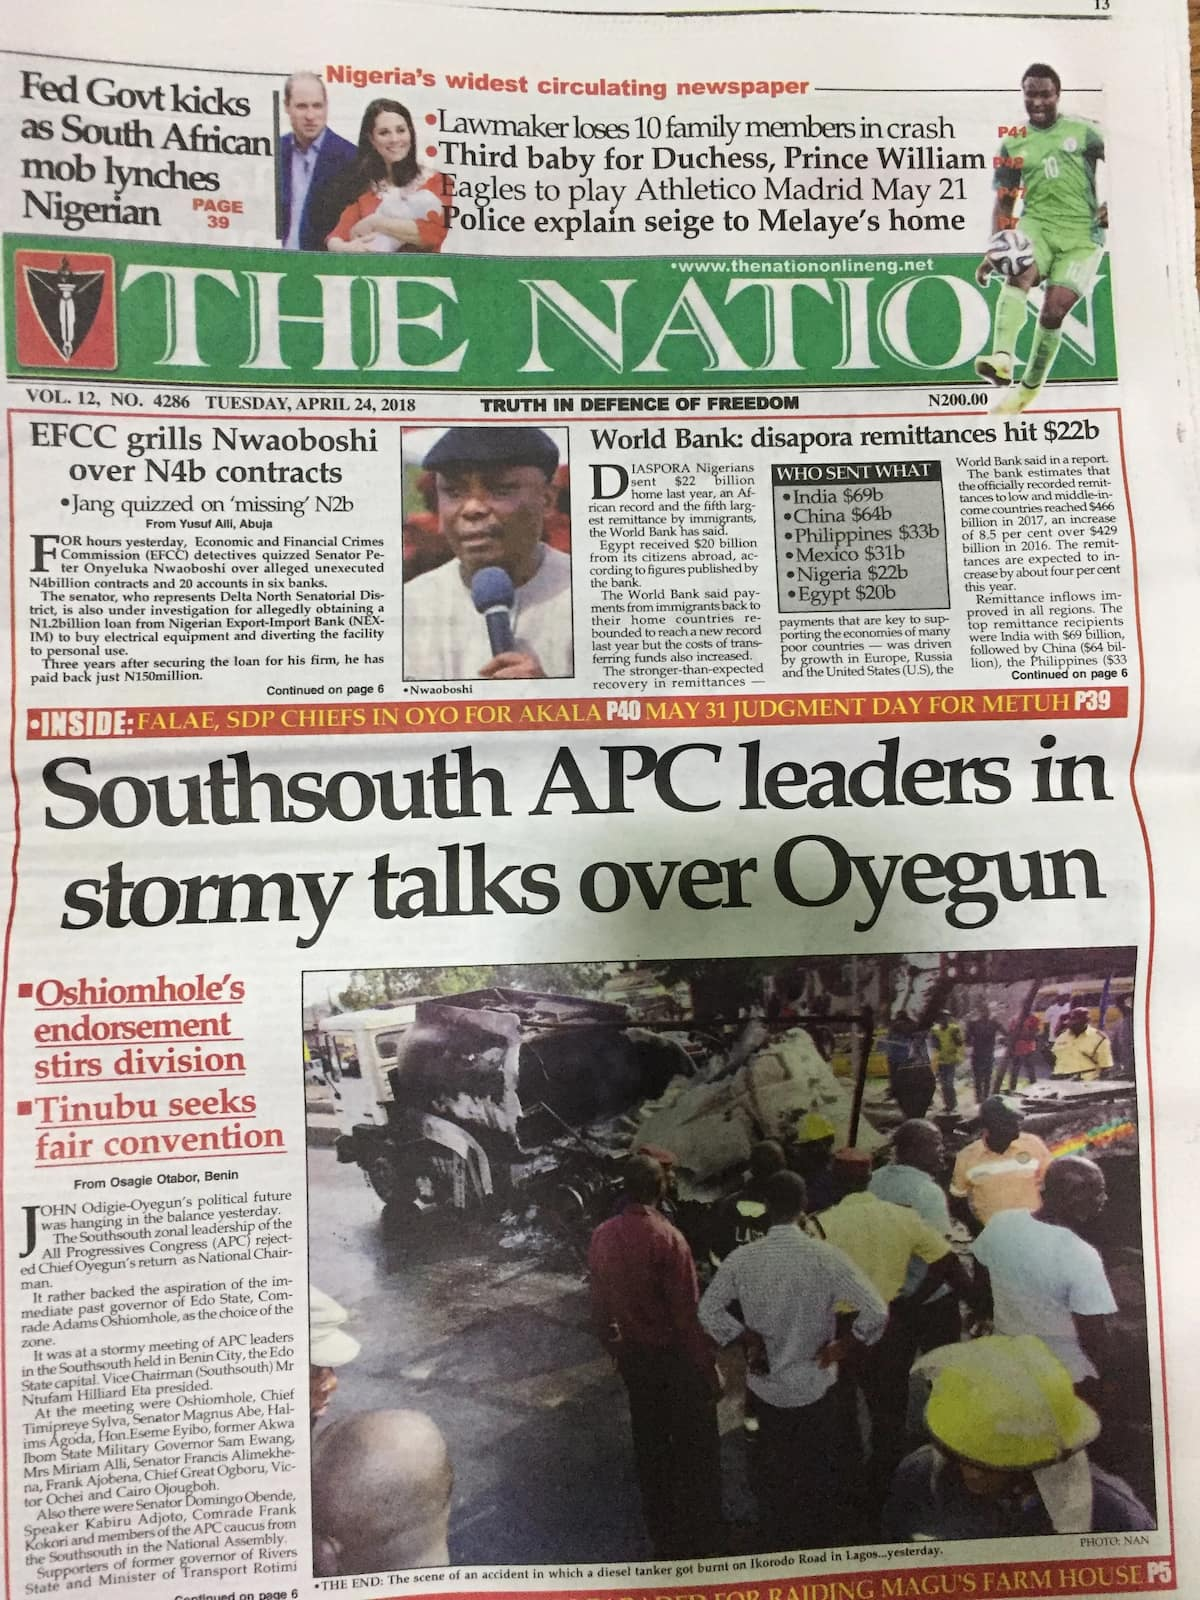 Newspaper review: PDP urges National Assembly to sanction Buhari over $1bn